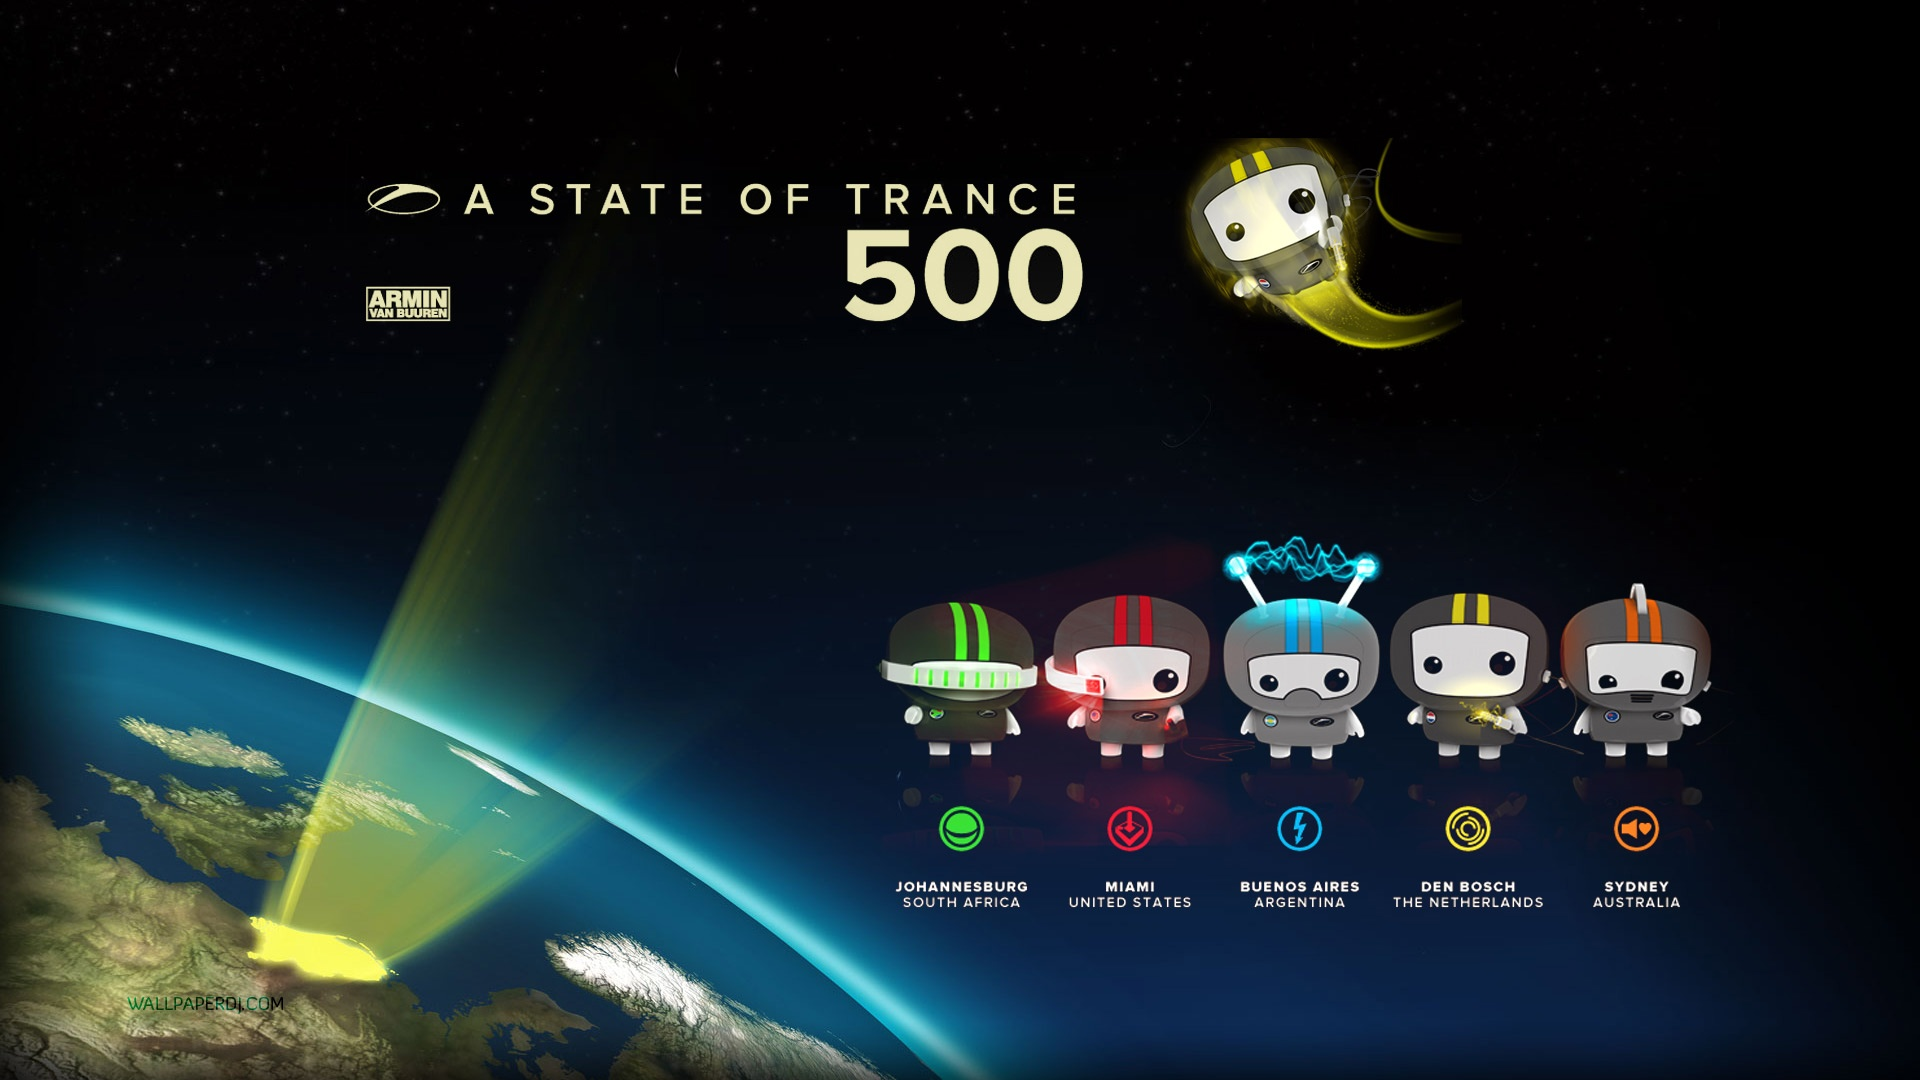 1920x1080 A State Of Trance 500 wallpaper music and dance wallpapers 1920x1080